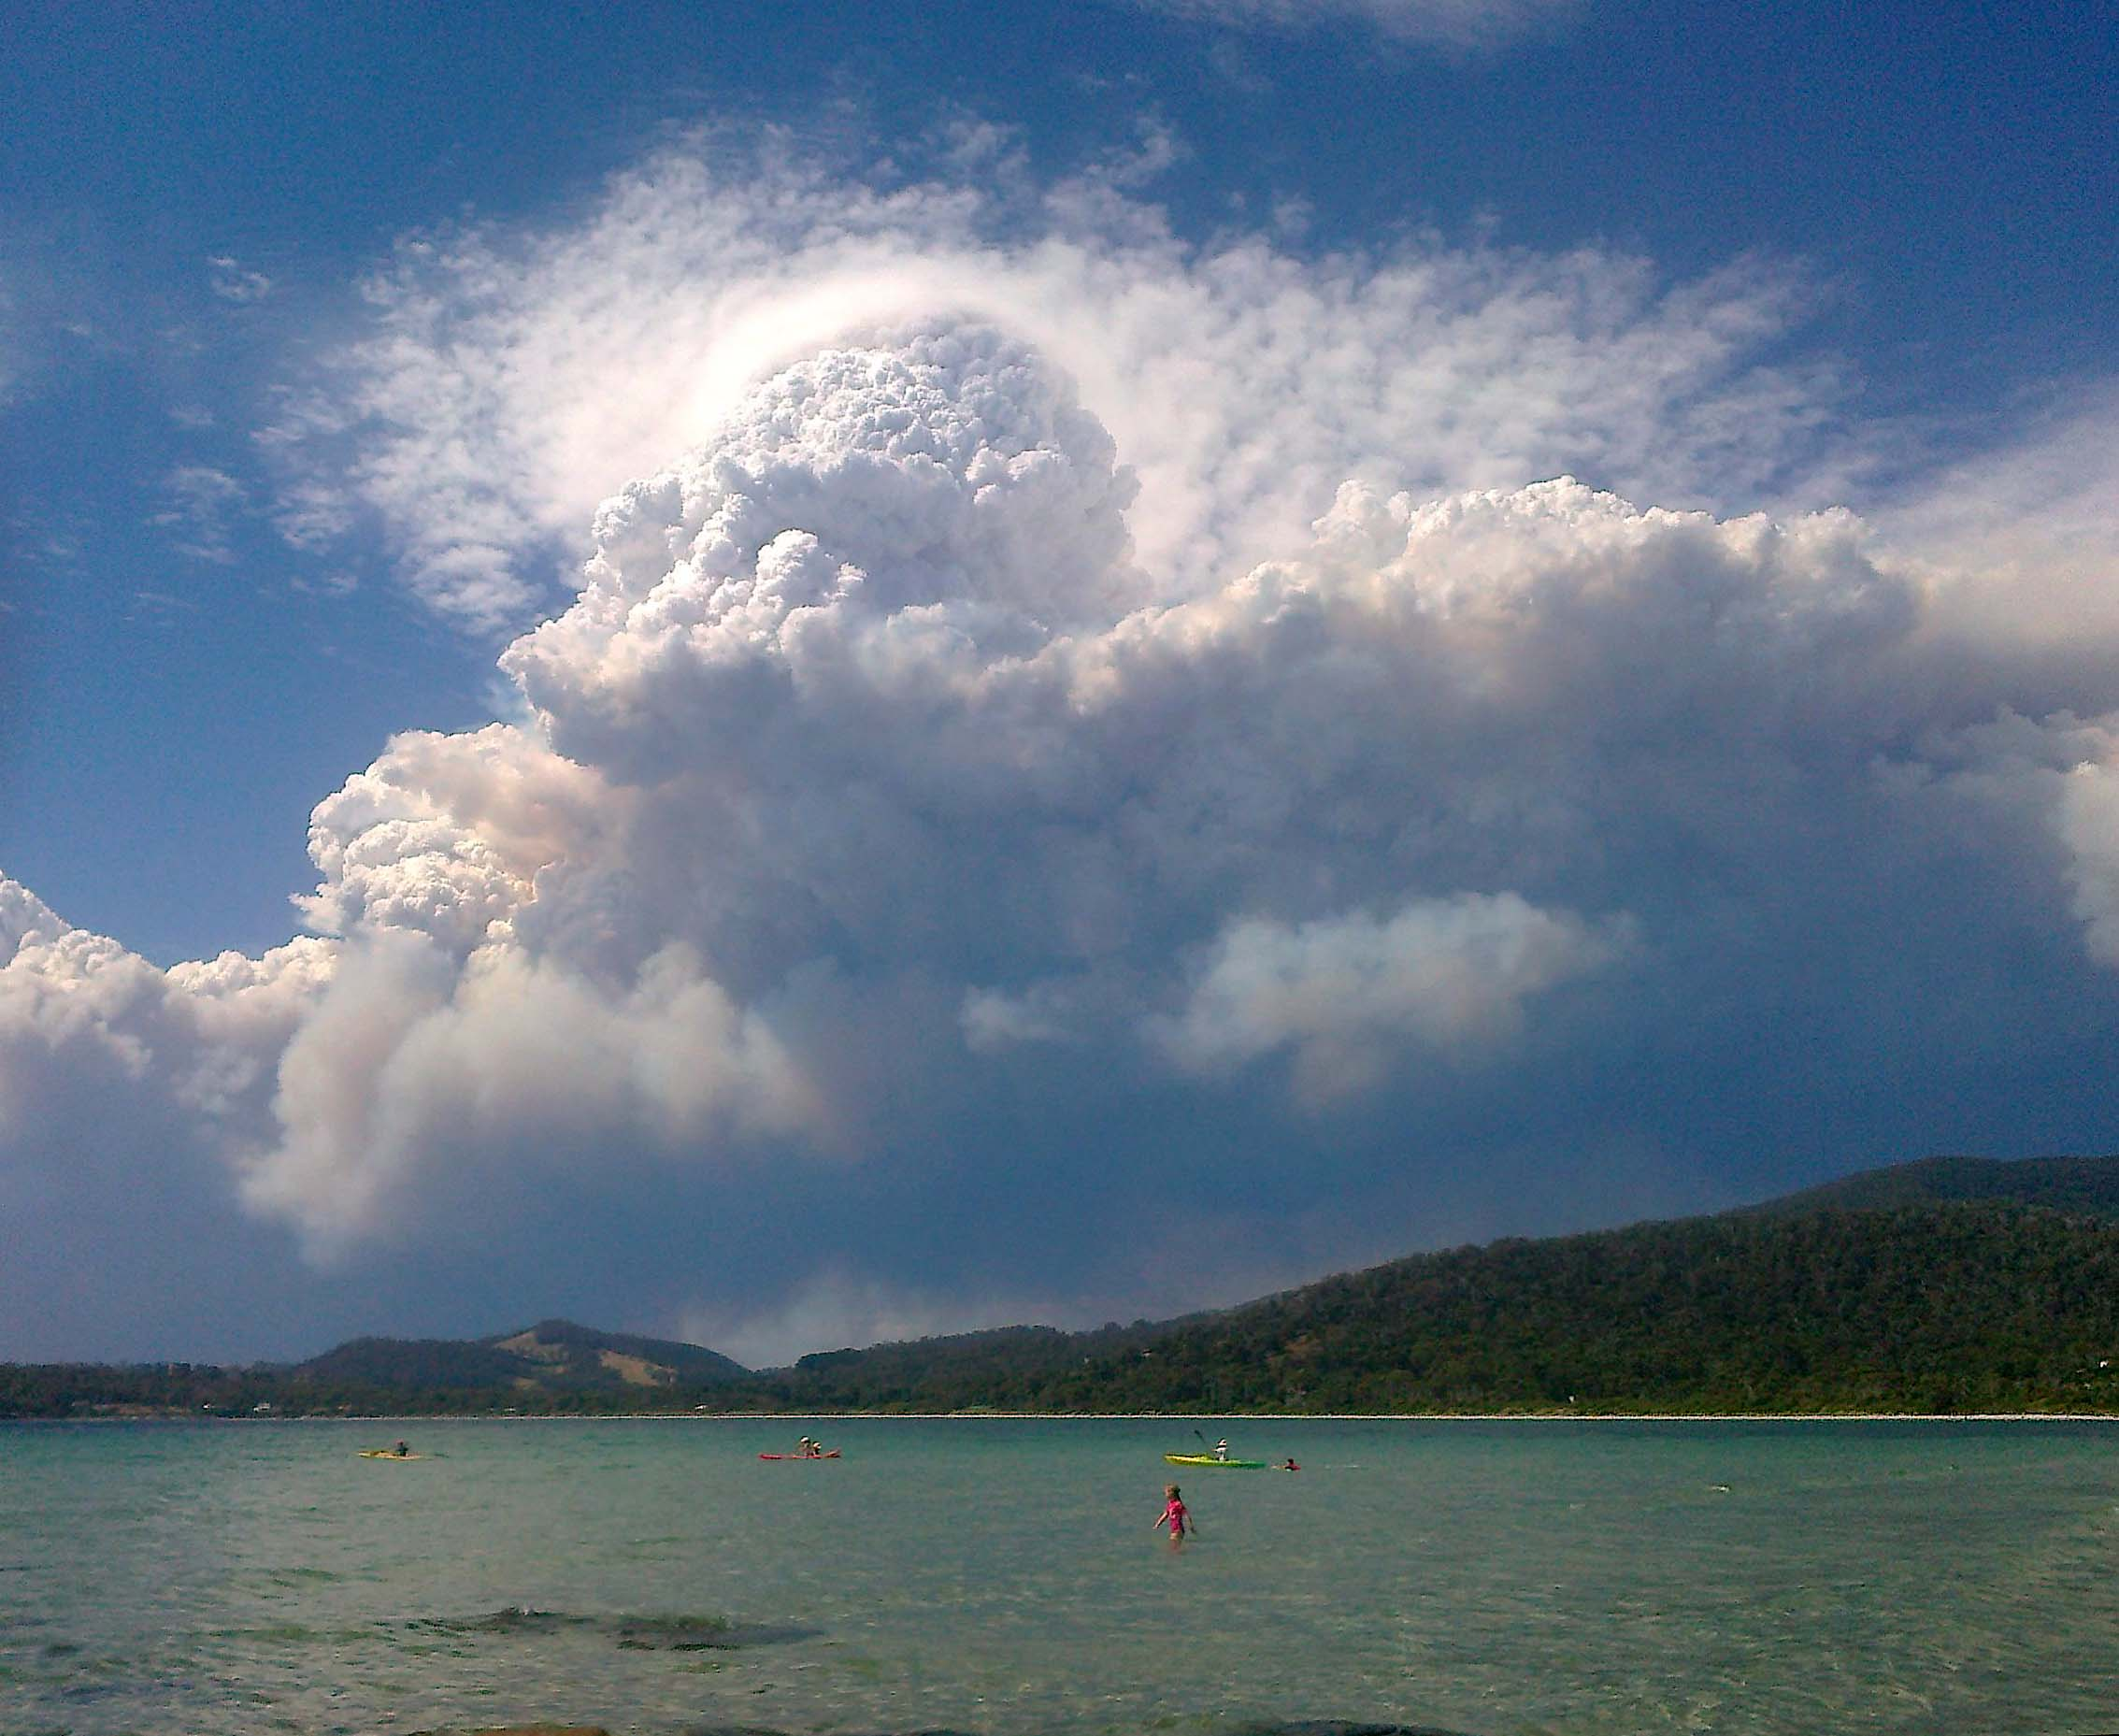 When bushfires make their own weather - Social Media Blog